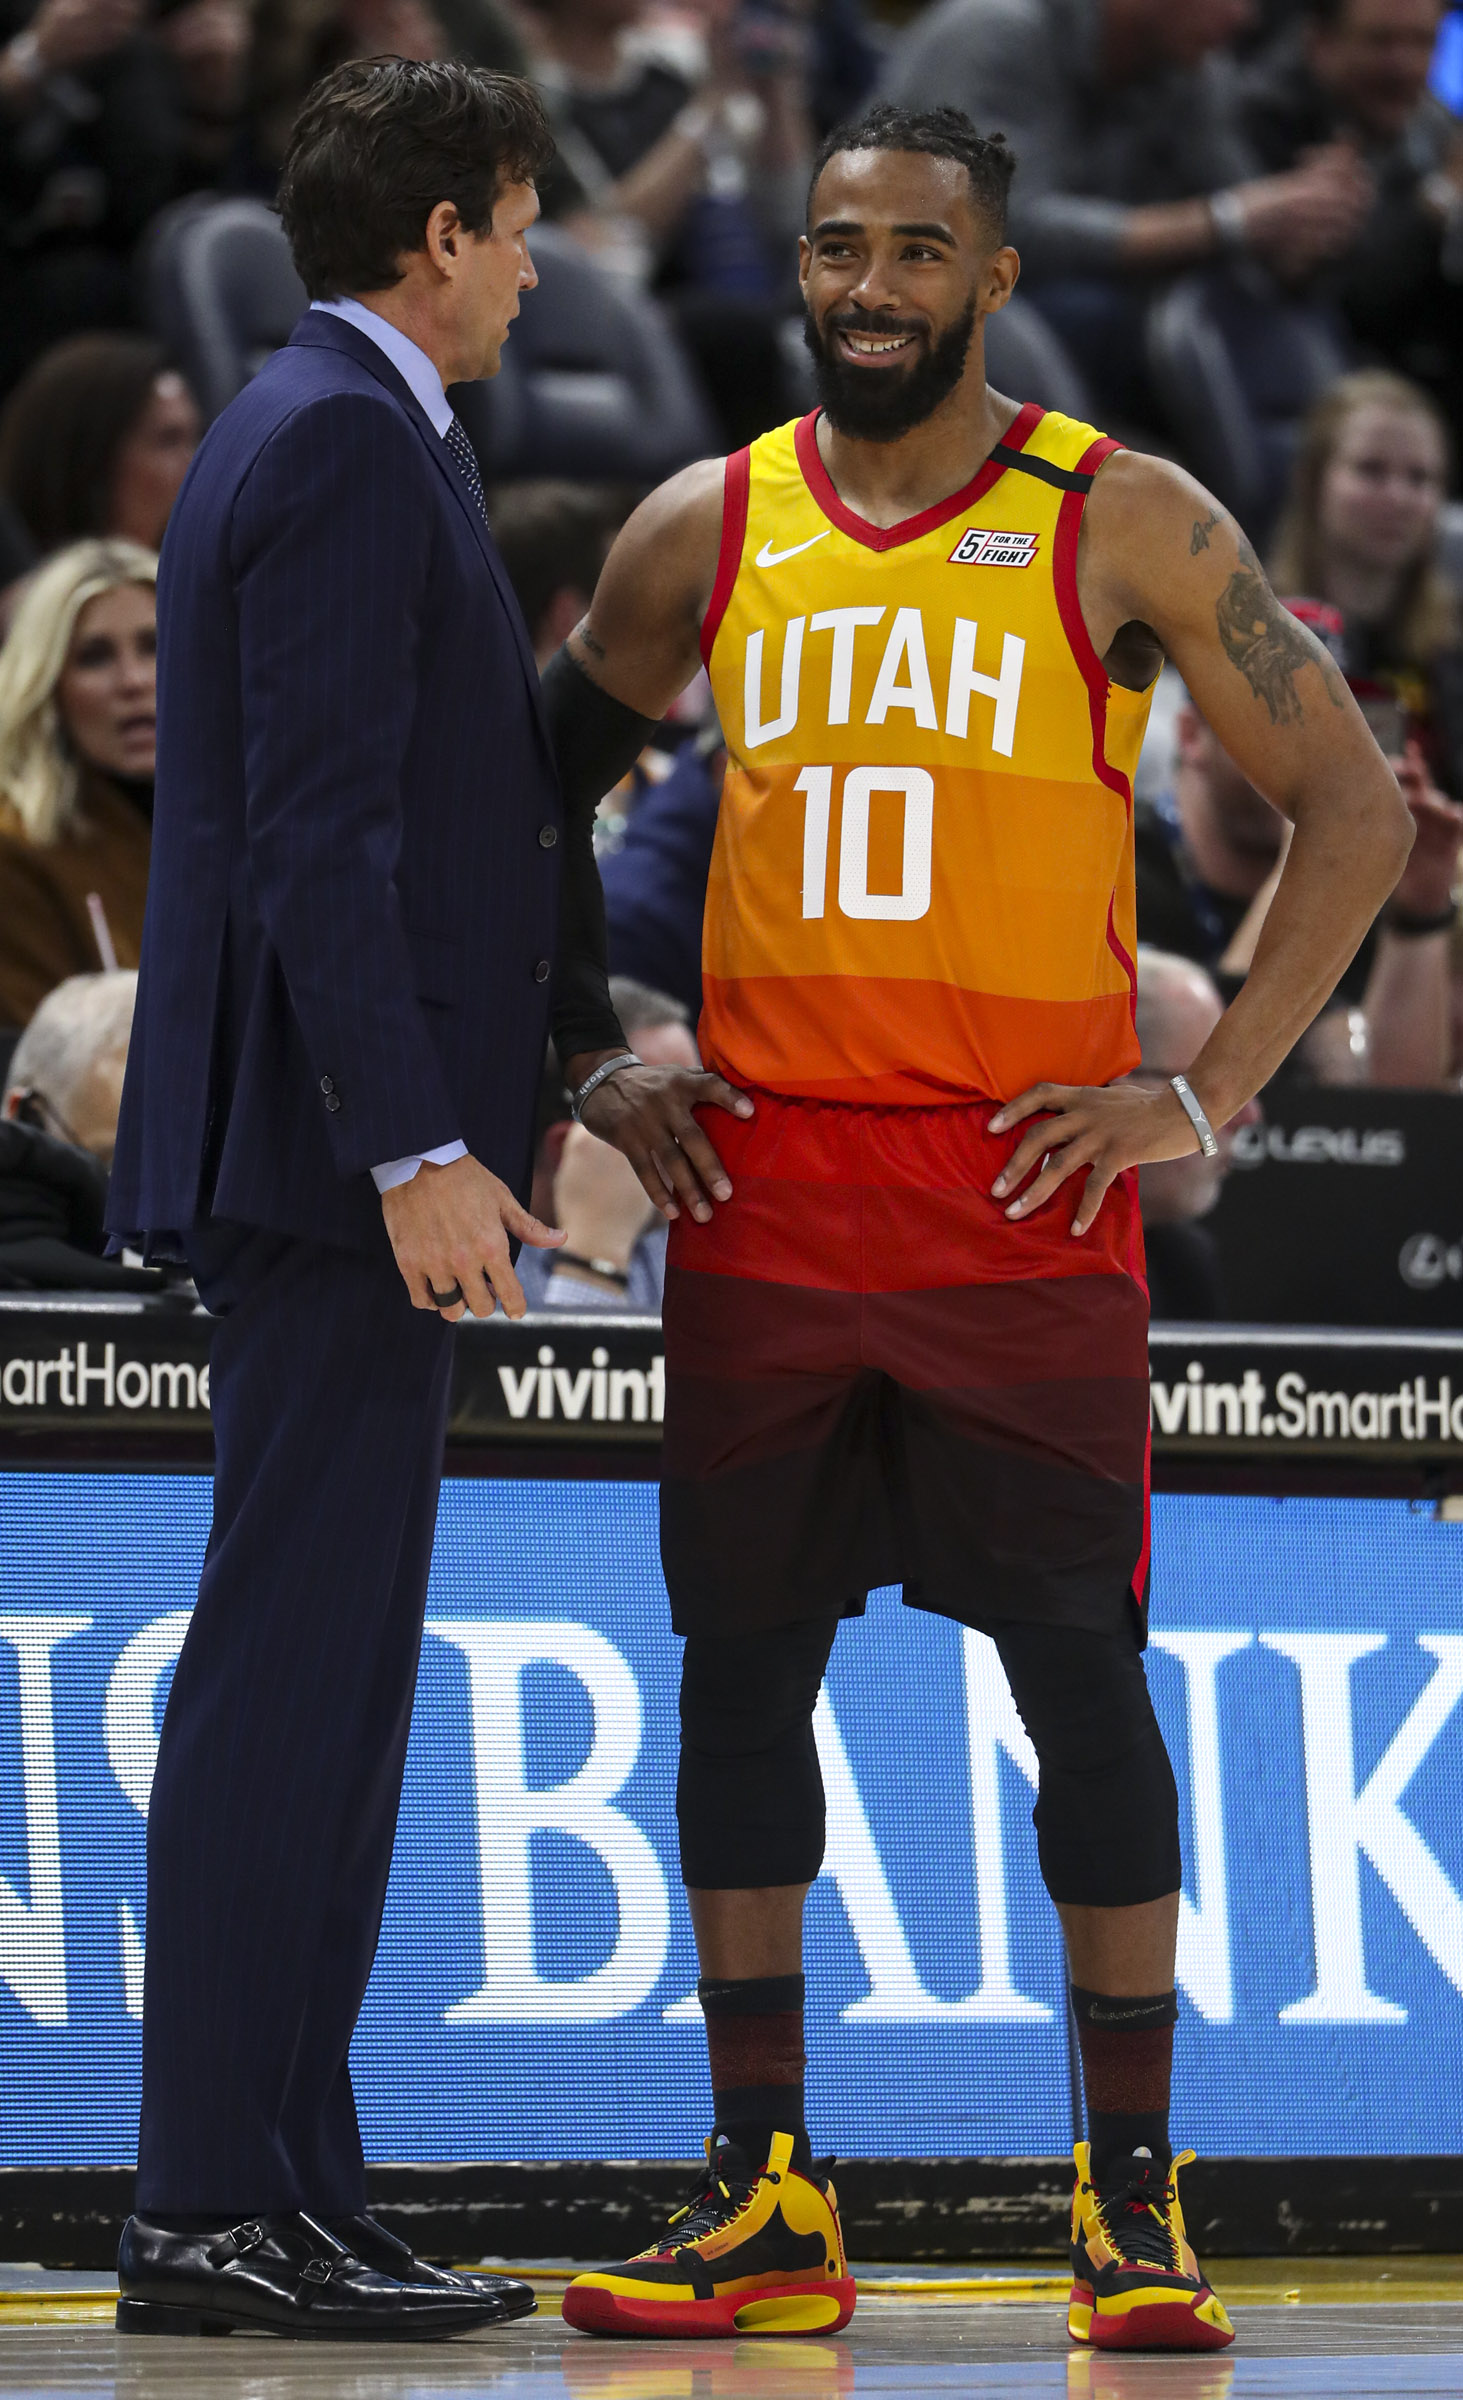 Utah Jazz guard Mike Conley (10) talks with Utah Jazz head coach Quin Snyder during the Utah Jazz and Indiana Pacers basketball game at Vivint Arena in Salt Lake City on Monday, Jan. 20, 2020.